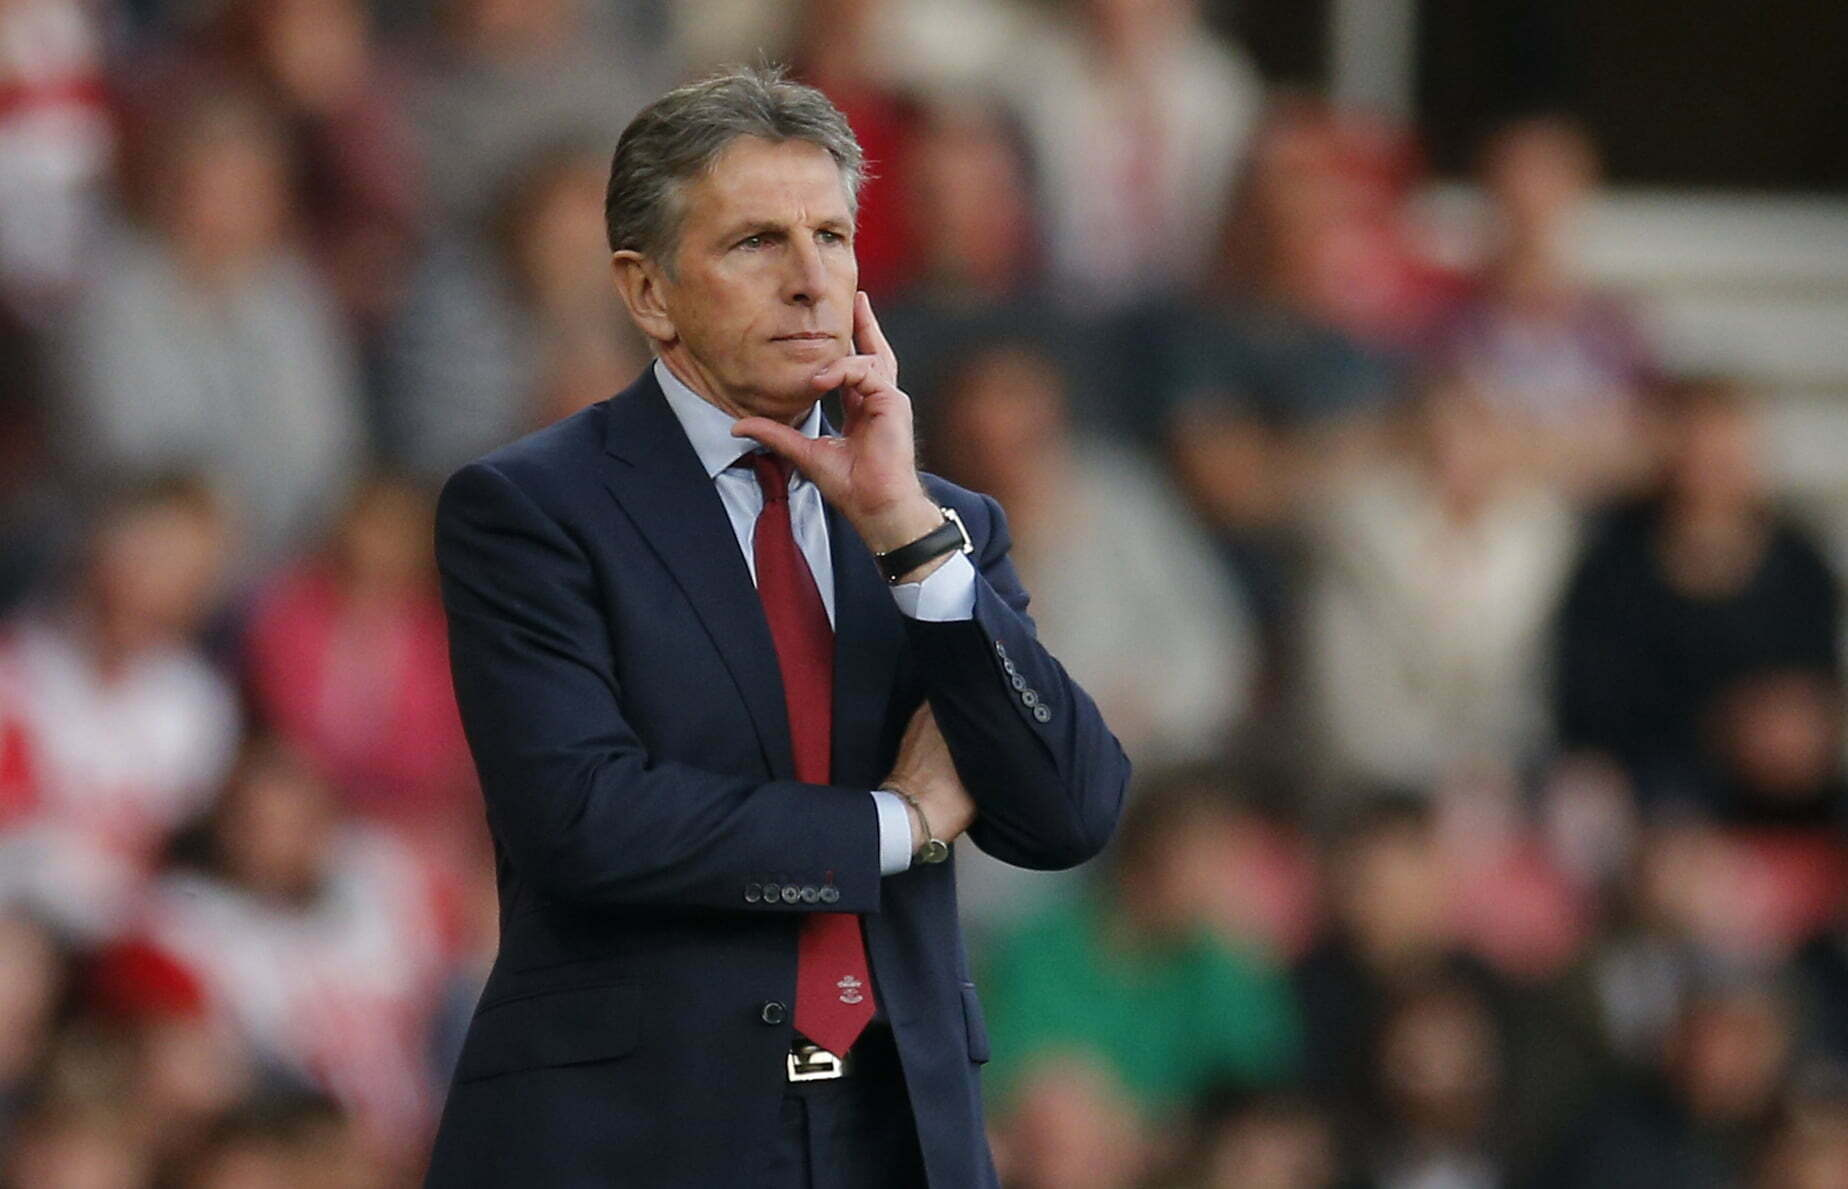 Mercato Leicester : Puel rend hommage à Rodgers et tacle Vardy